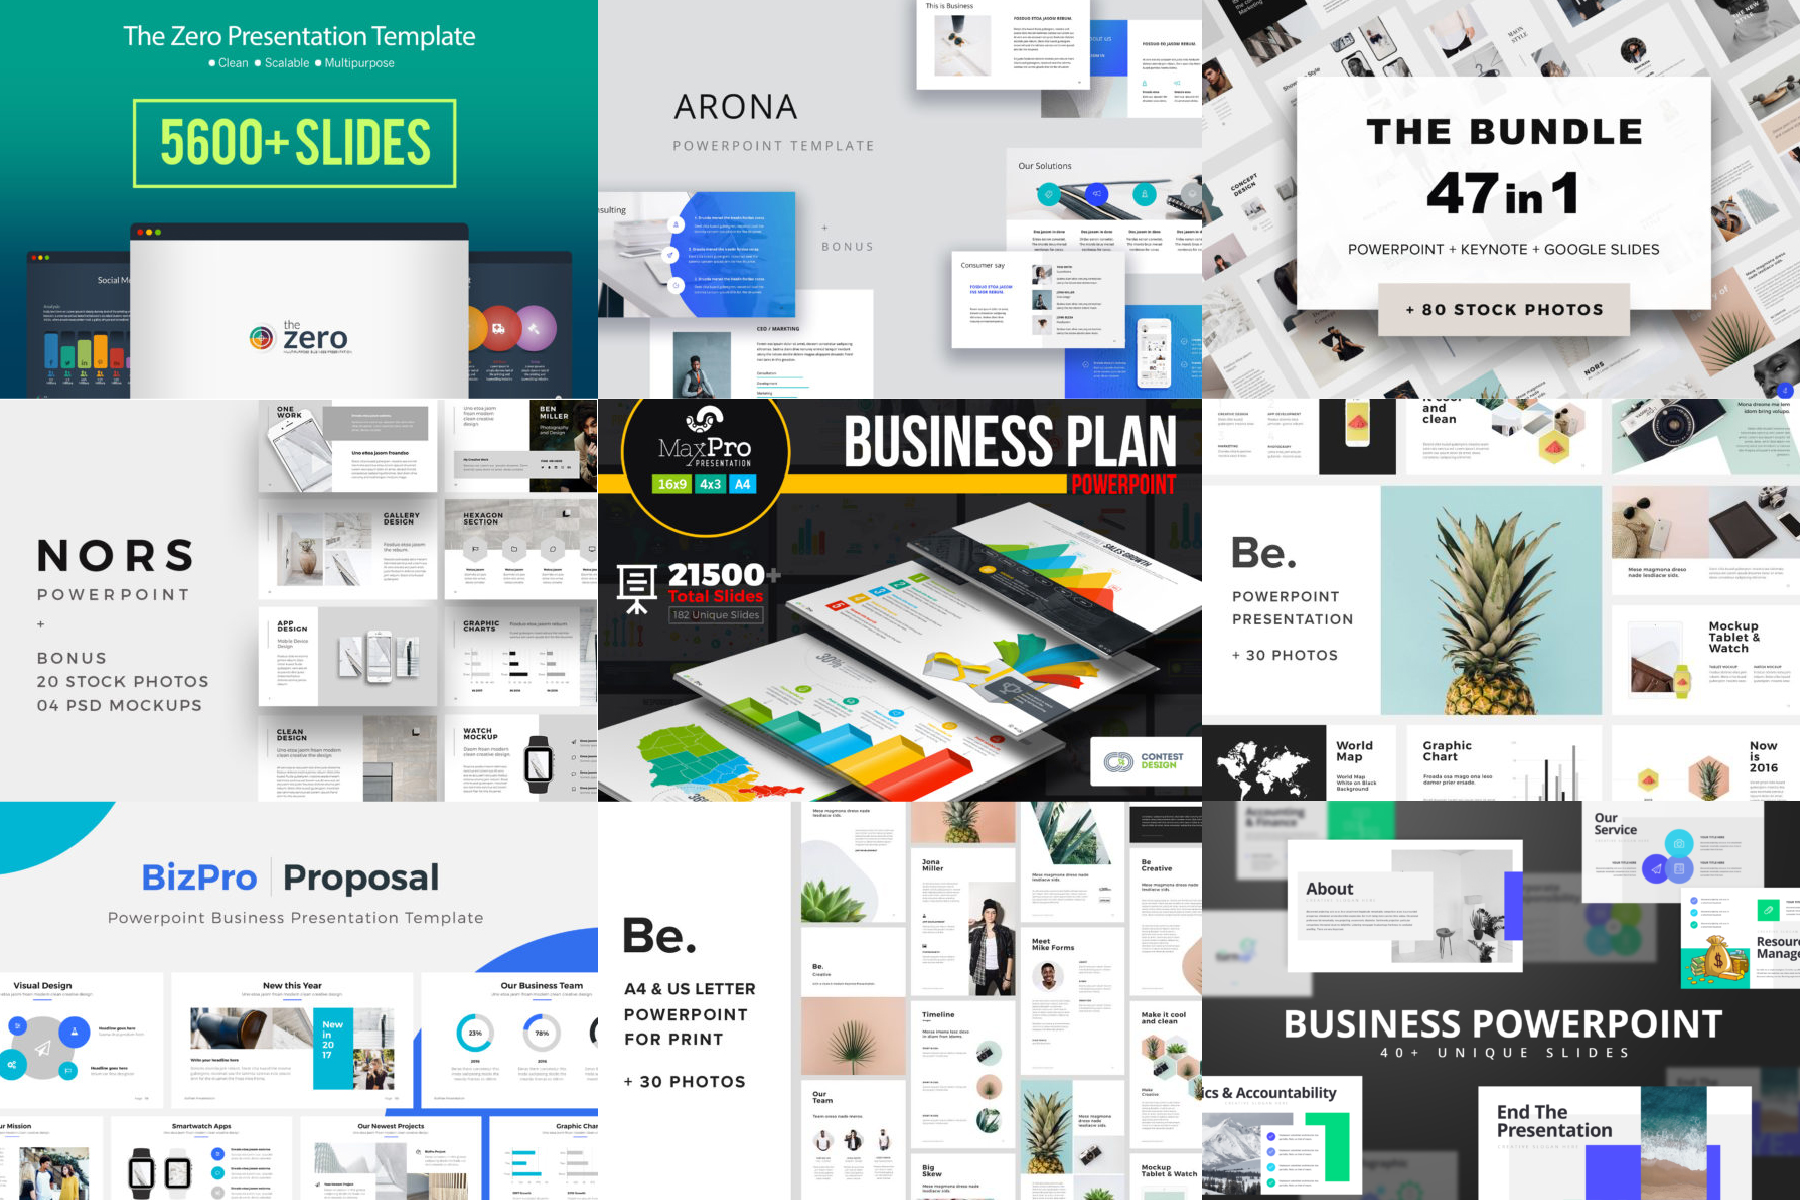 Purchase powerpoint presentation templates